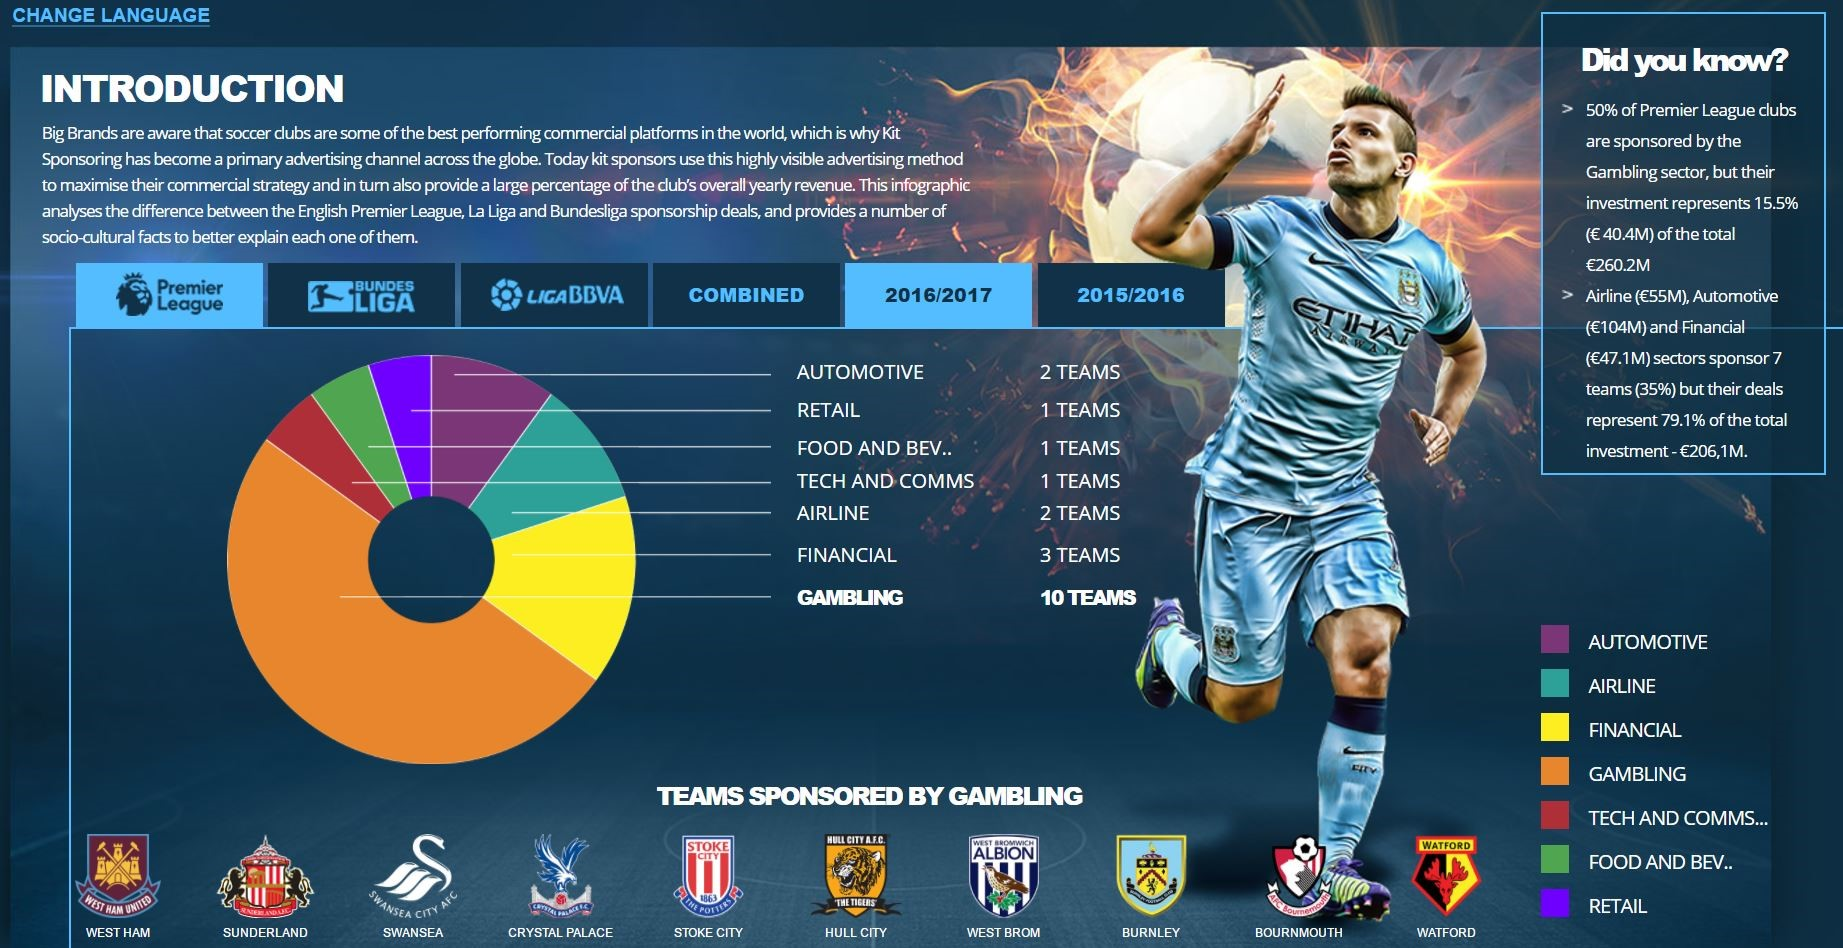 Online Gaming sponsors 50% of EPL teams